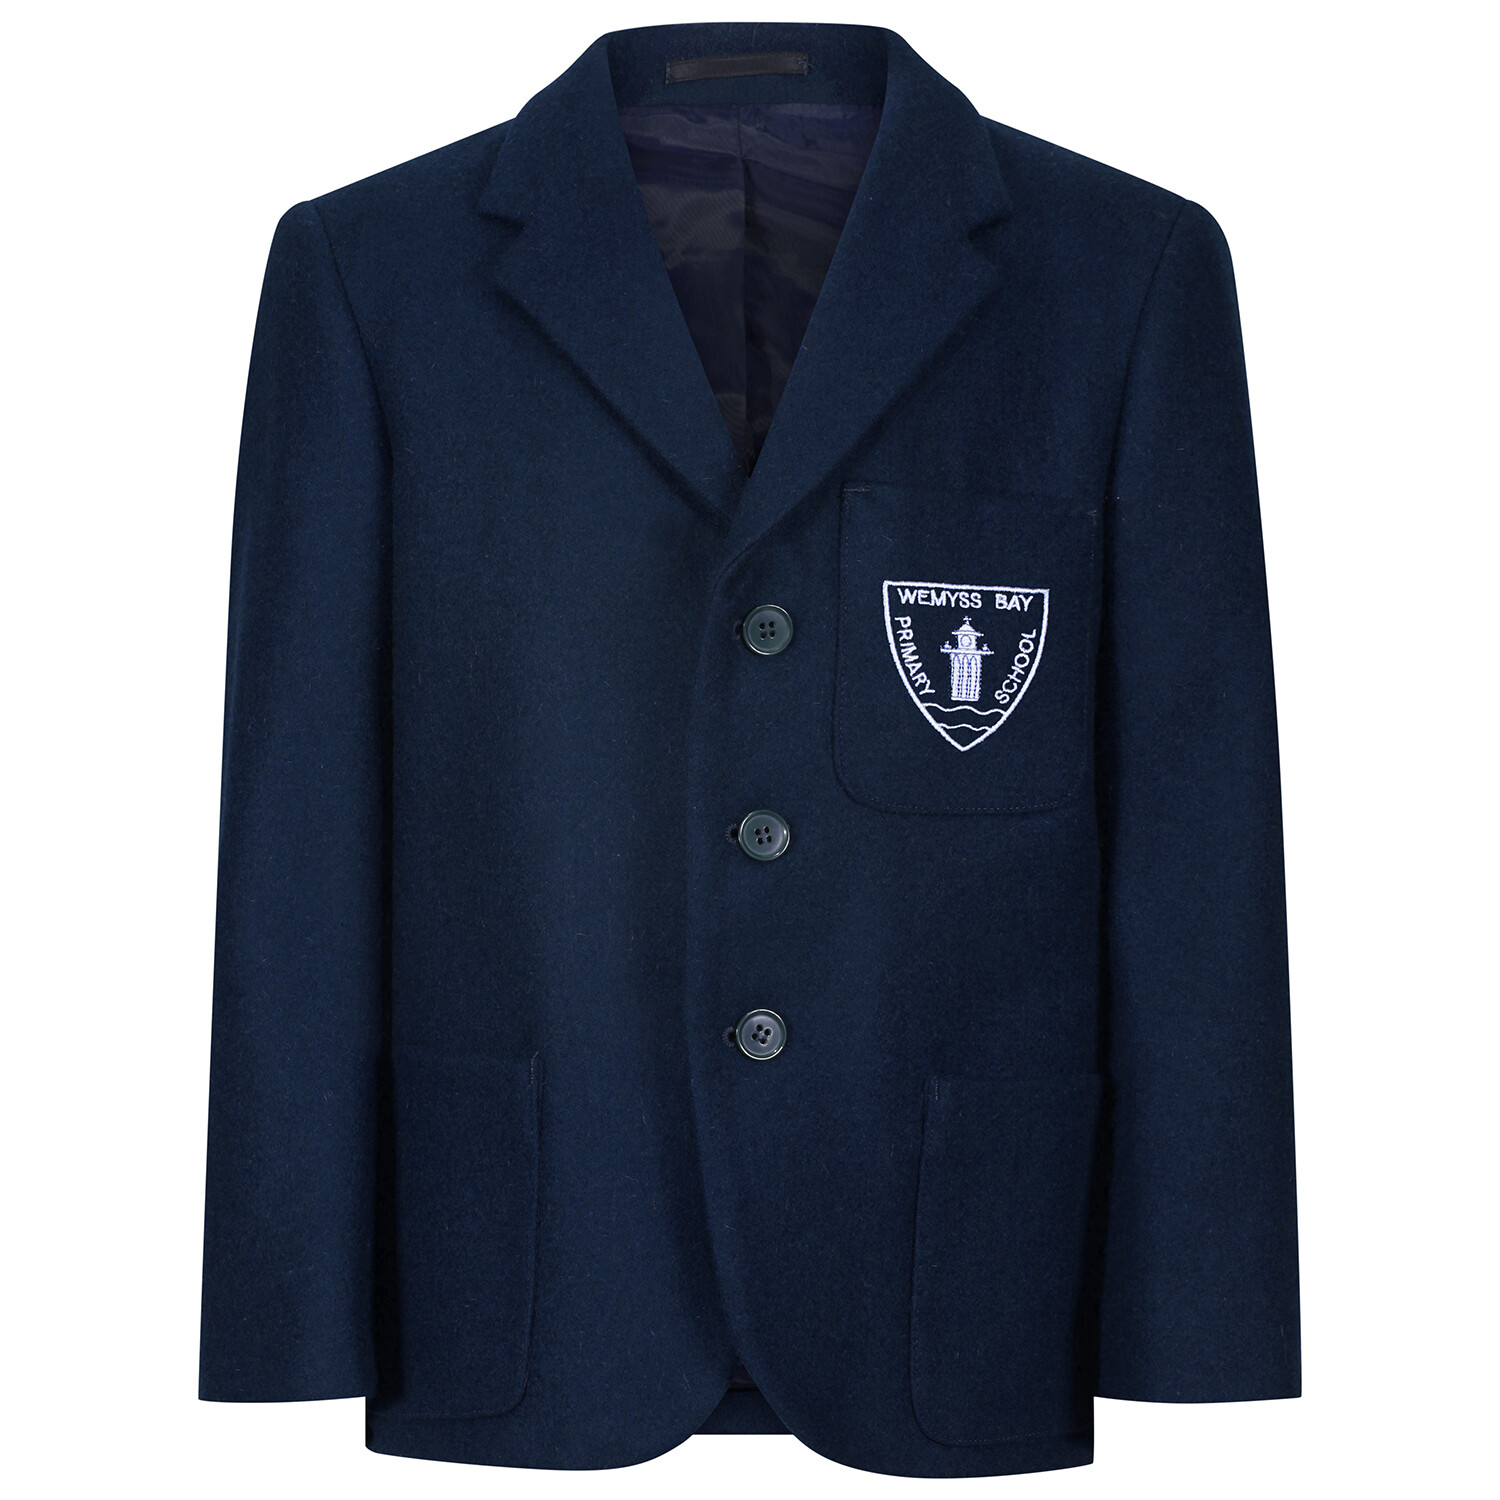 Wemyss Bay Primary 'Wool' Blazer (Made-to-Order)